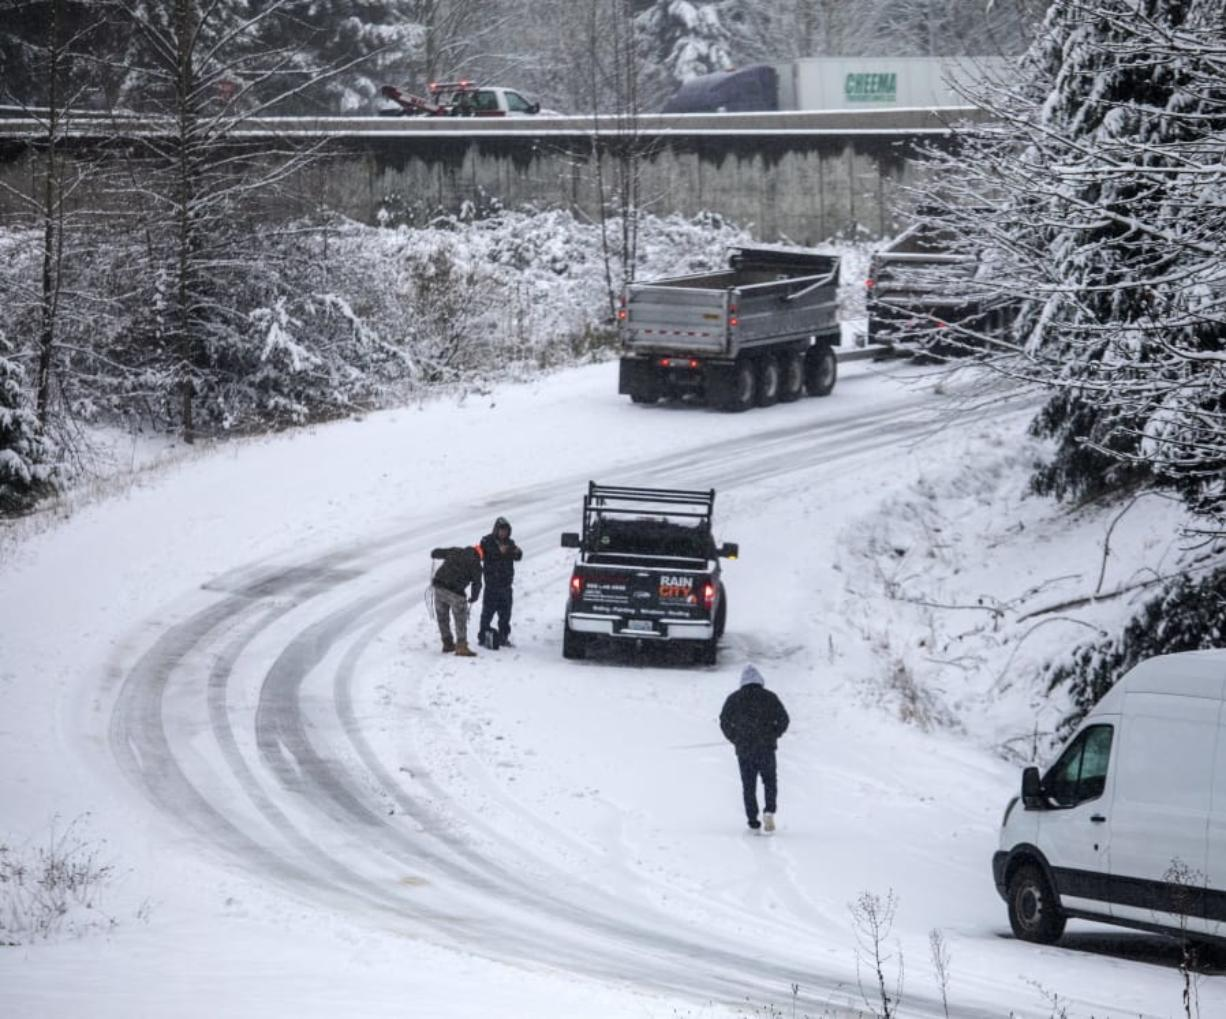 A driver starts to put on chains in compact snow and ice on the NE 72nd Place on-ramp to Highway 405 in Kirkland, Wash., Monday, Jan. 13, 2020. (Steve Ringman/The Seattle Times via AP)